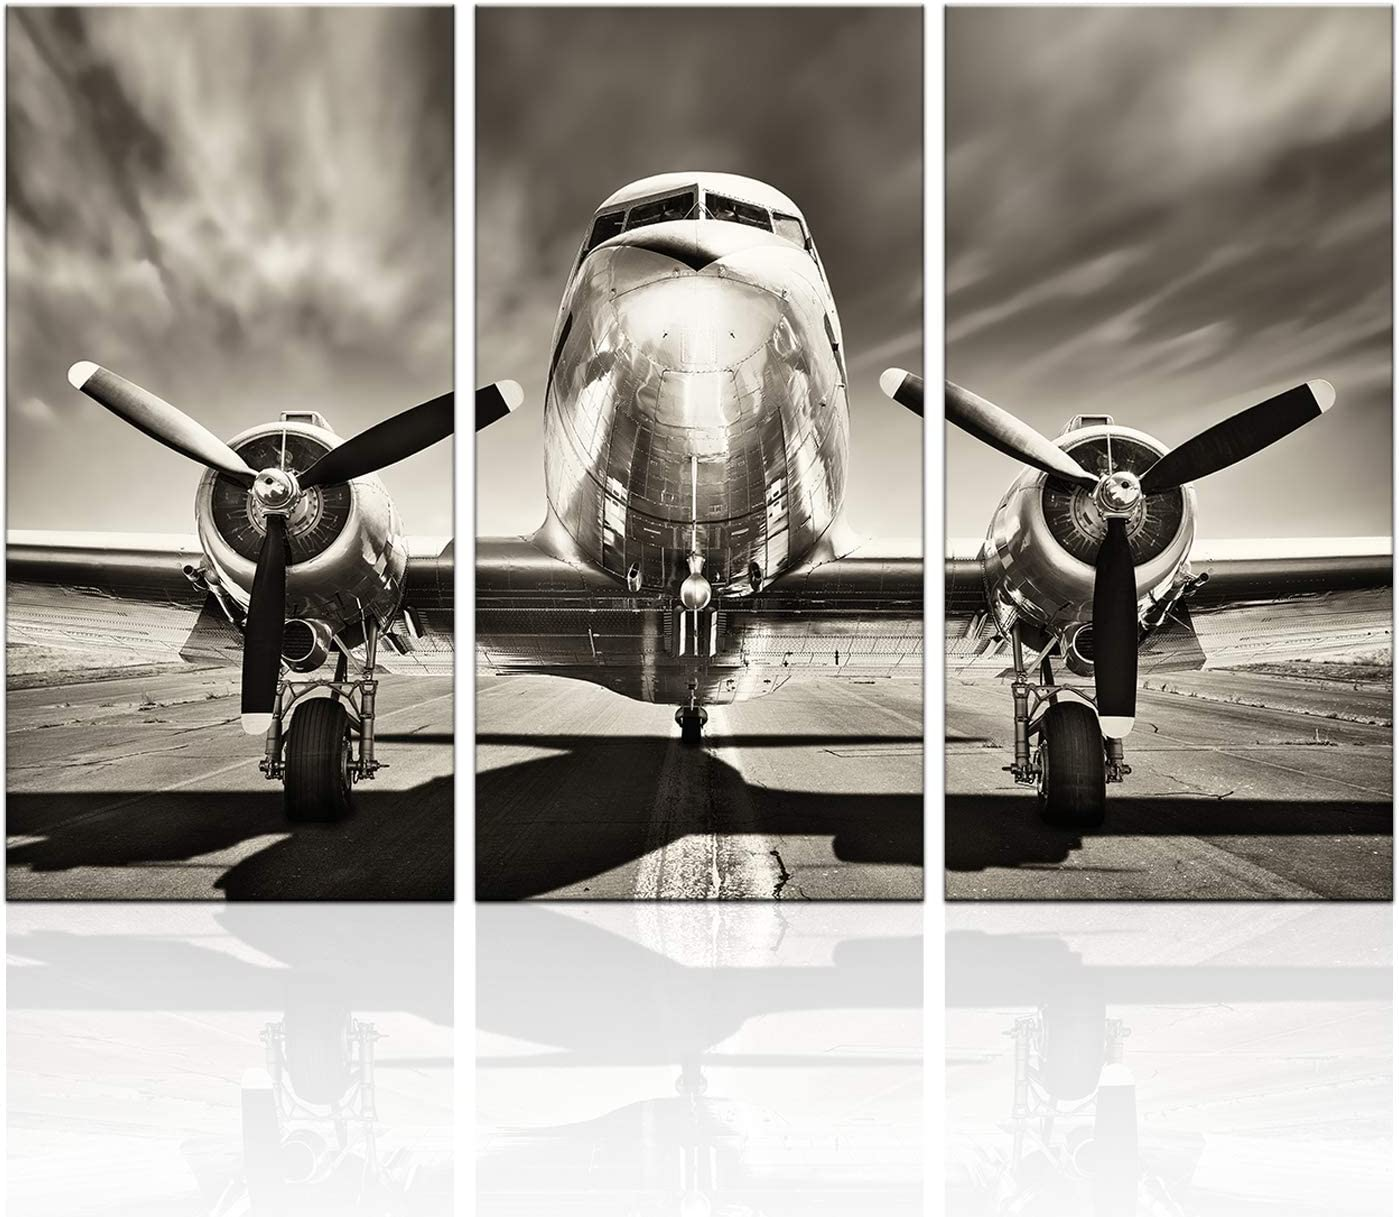 KLVOS 3 Piece Airplane Wall Art Vintage Black and white Propeller Aircraft Picture for Boy Room Home Office Modern Home Decor Stretched and Framed Ready to Hang - 16